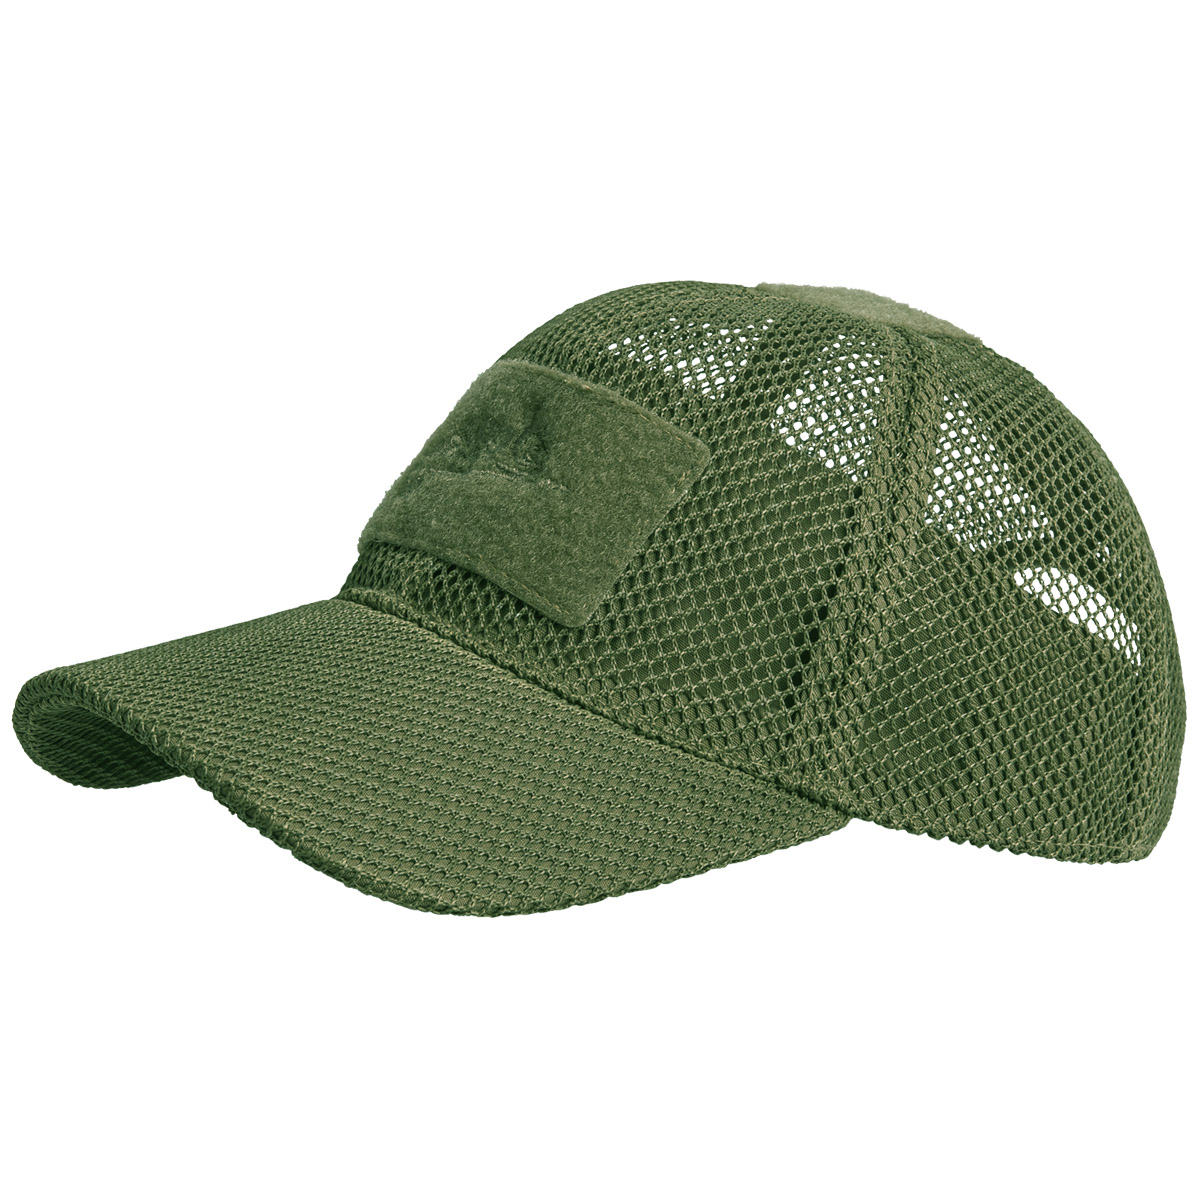 1d5c535c Details about Helikon Tactical Mesh Baseball Cap Breathable Hat Airsoft  Shooting Olive Green